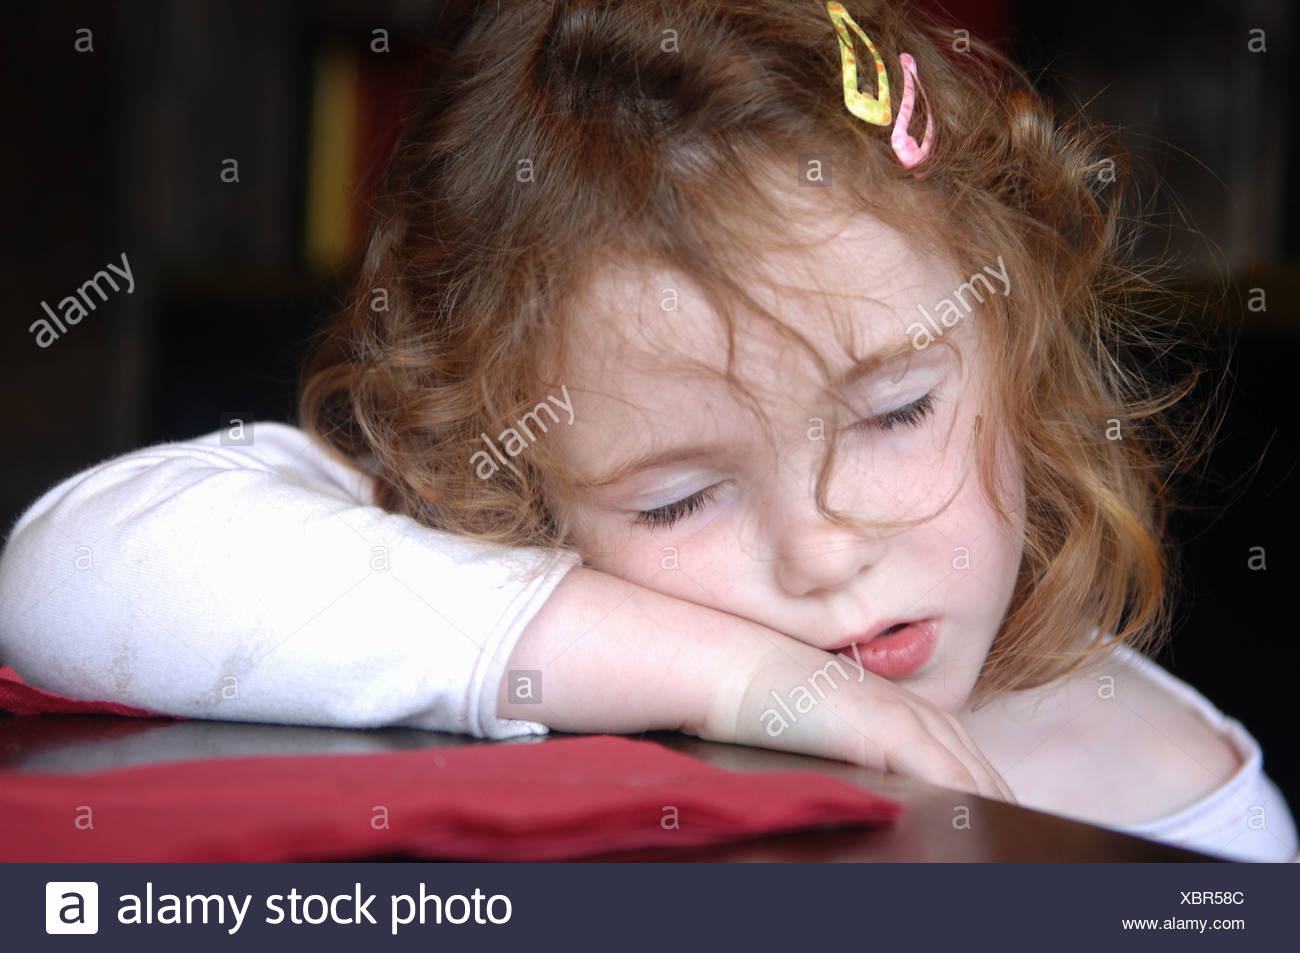 Exhausted - Stock Image